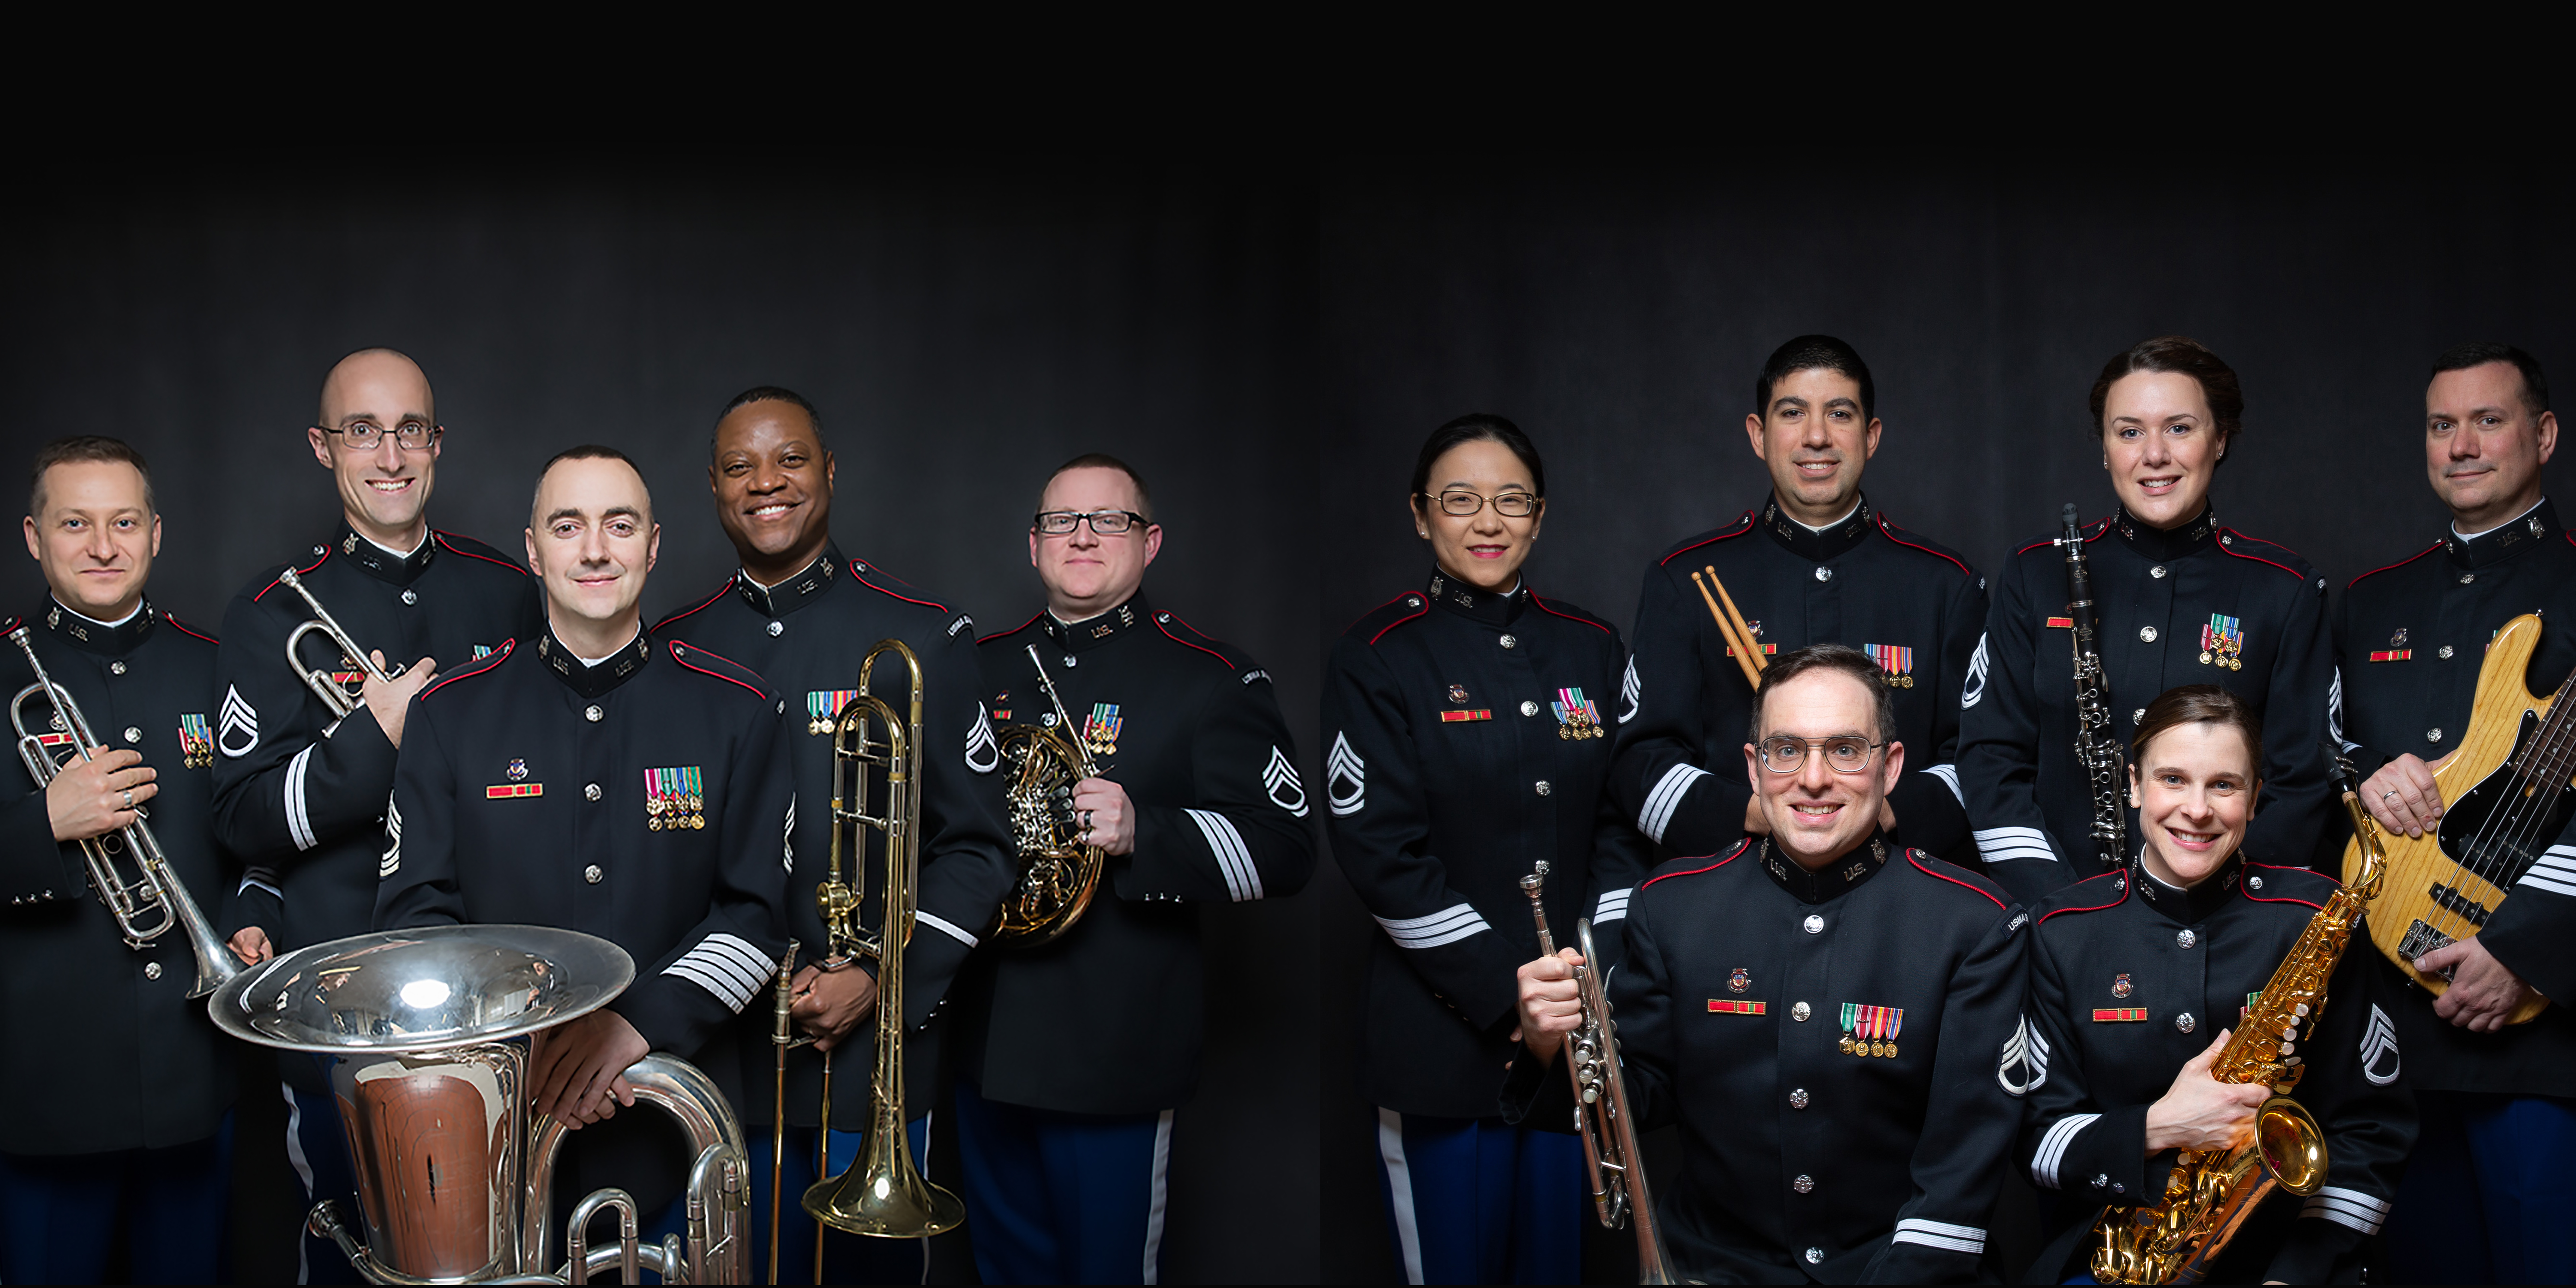 WEST POINT BRASS QUINTET and QUINTETTE 7 Holiday Concert